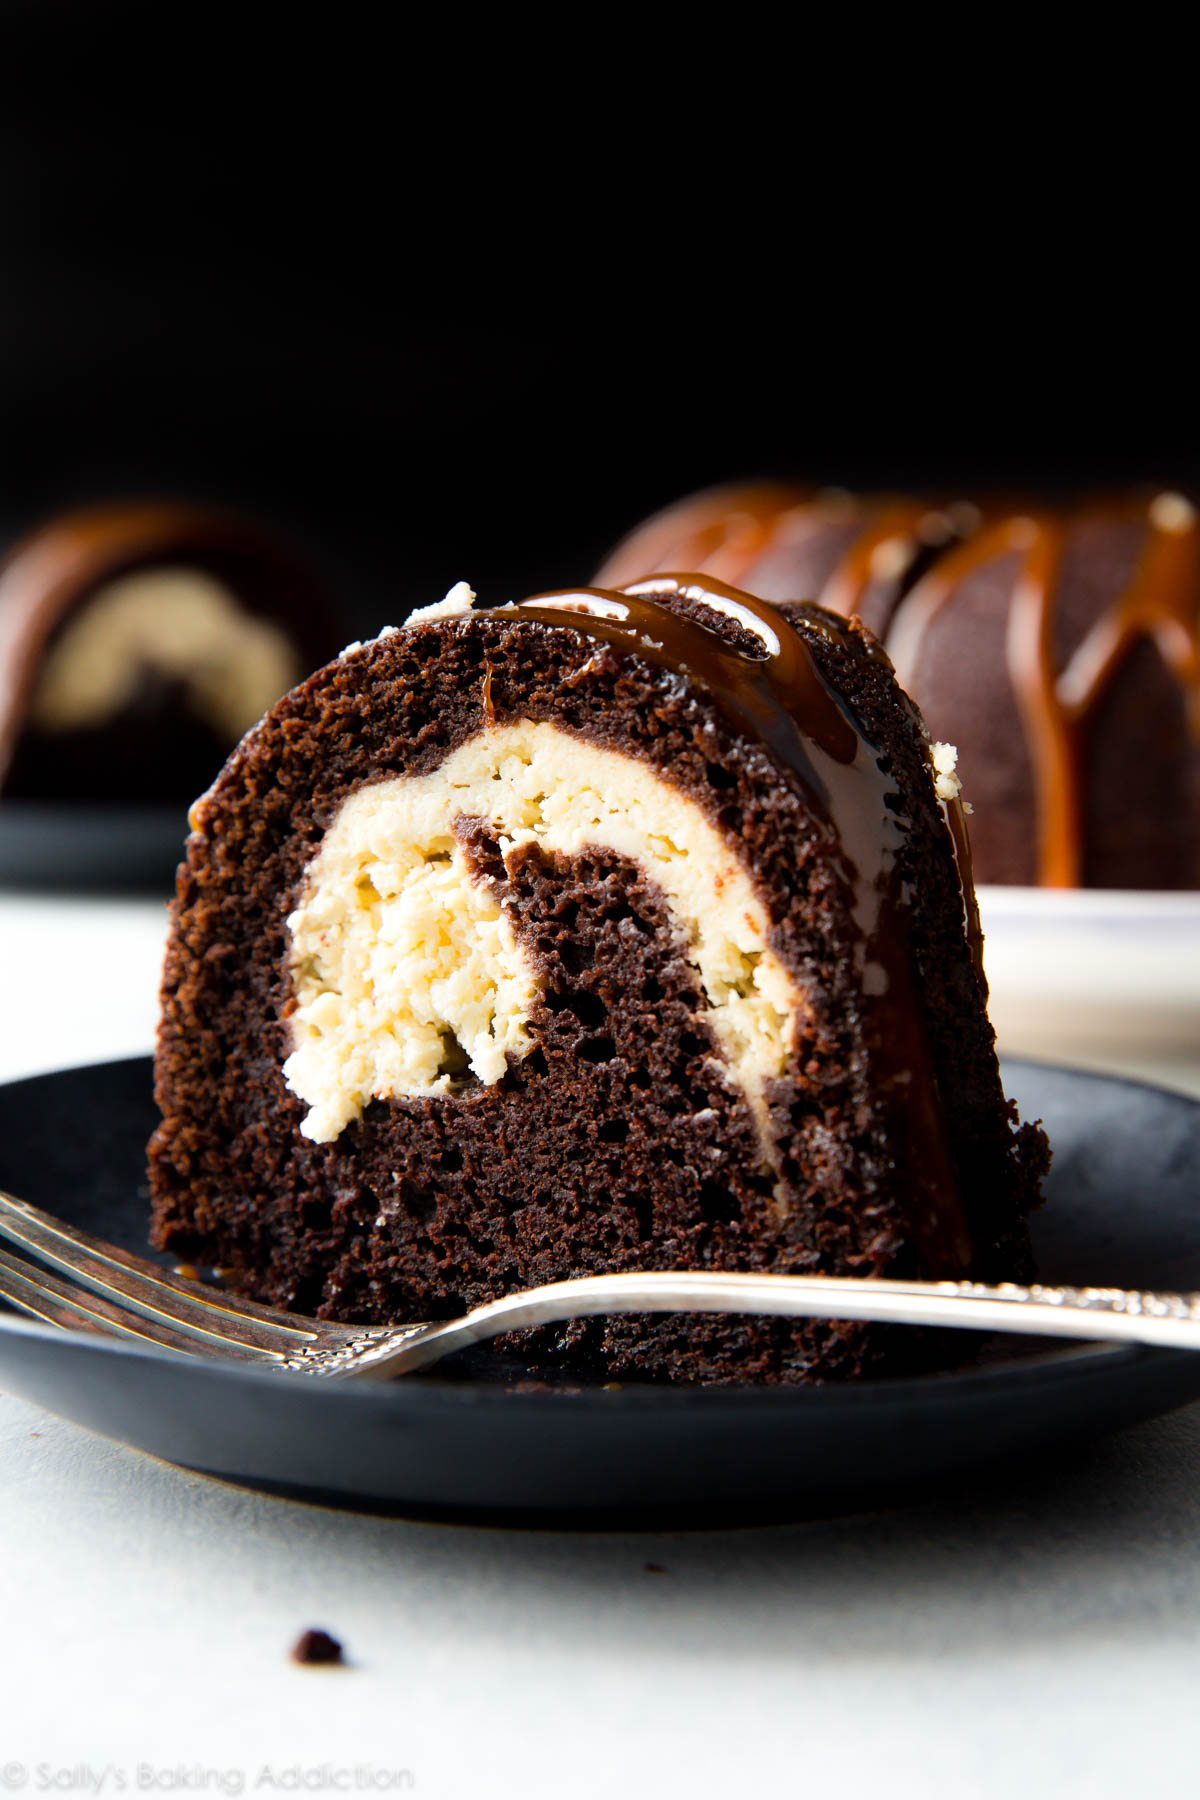 Chocolate Sauce For Bundt Cake